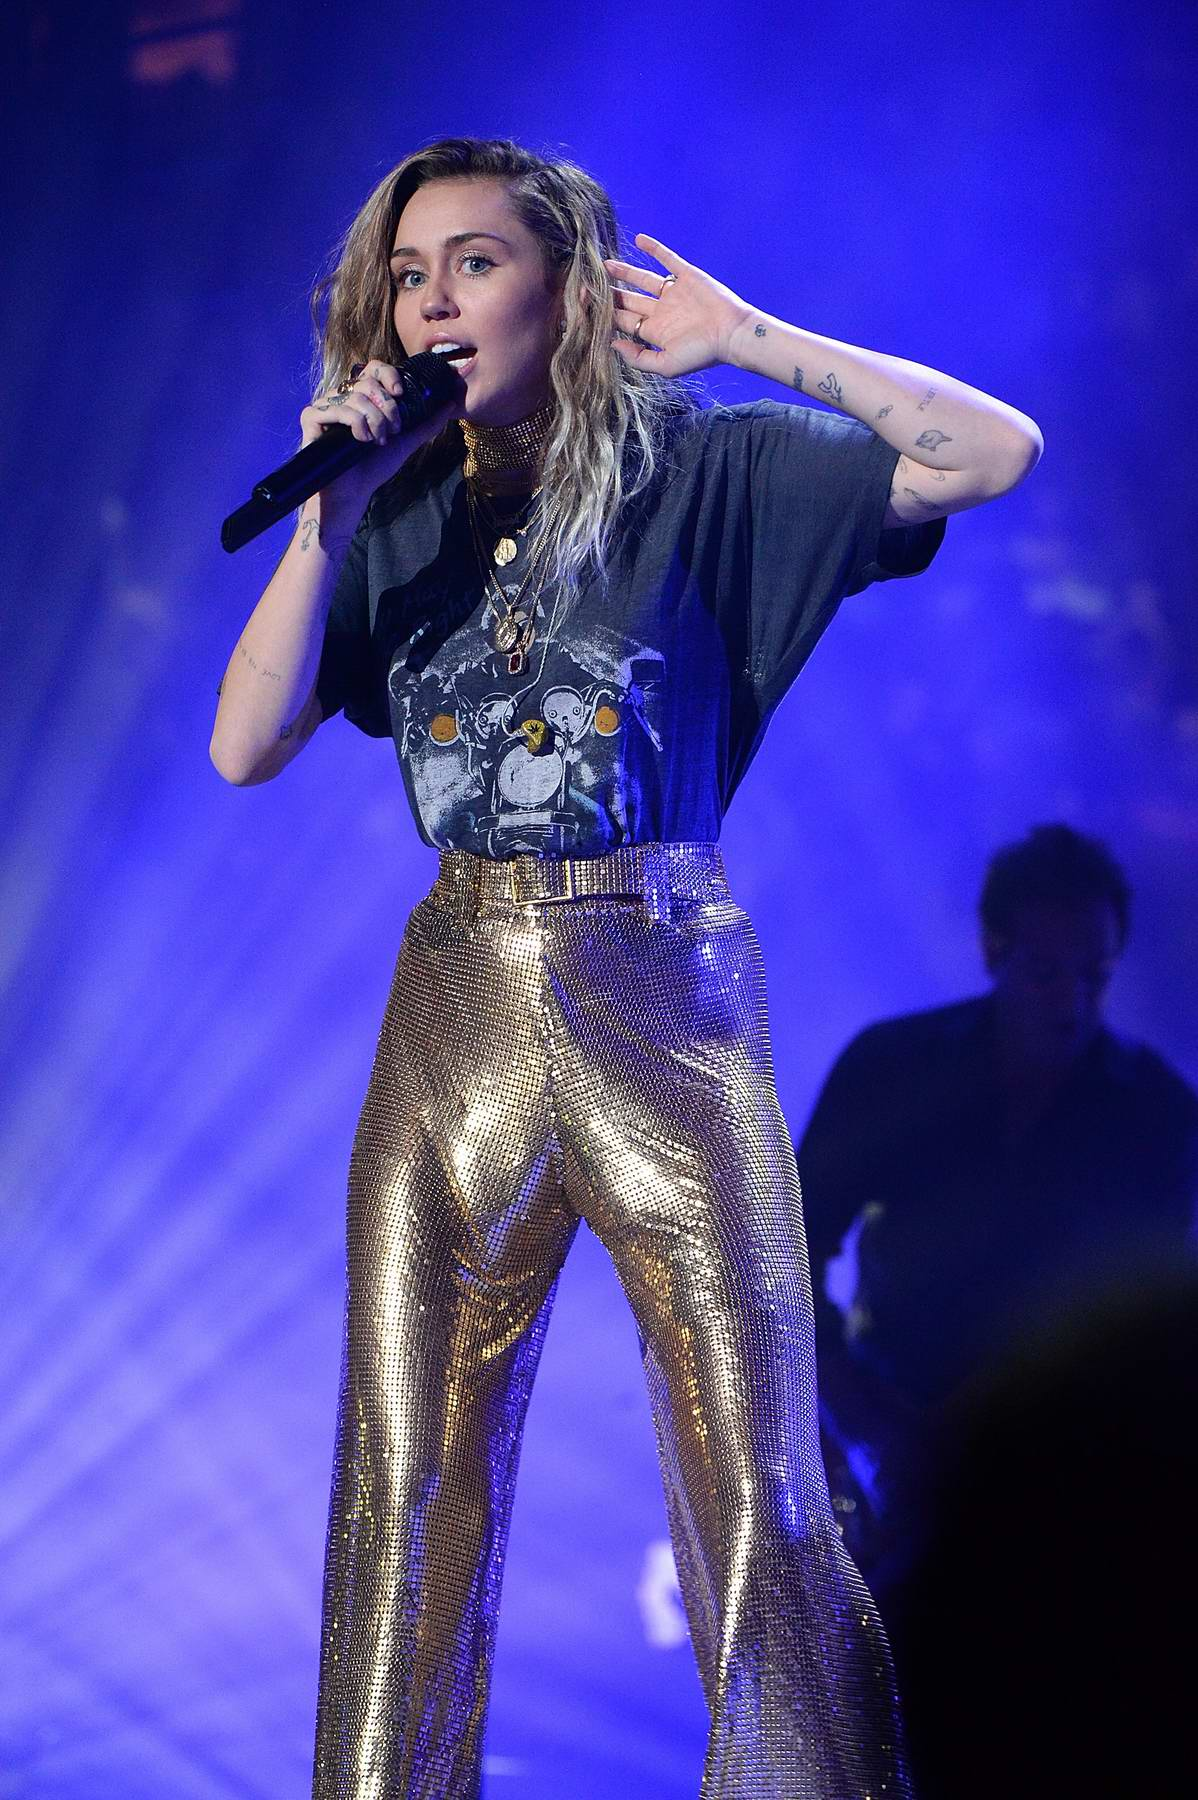 Miley Cyrus performs with Billy Joel at Madison Square Garden in New York